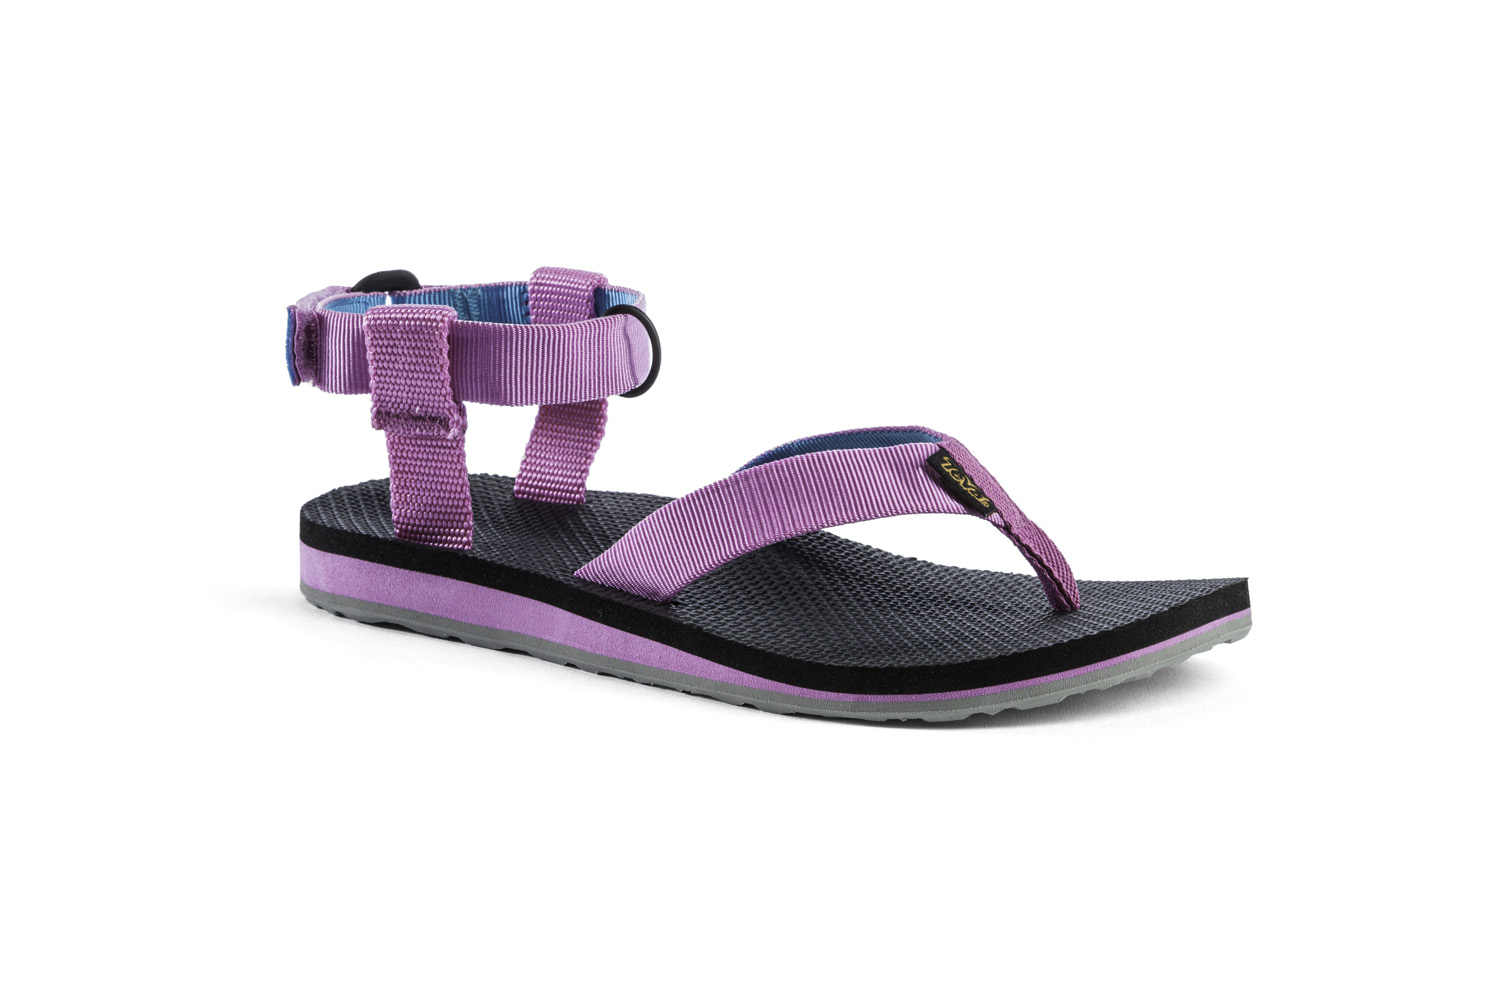 Teva Original Sandals in Pink and Blue, £30 (available at John Lewis)